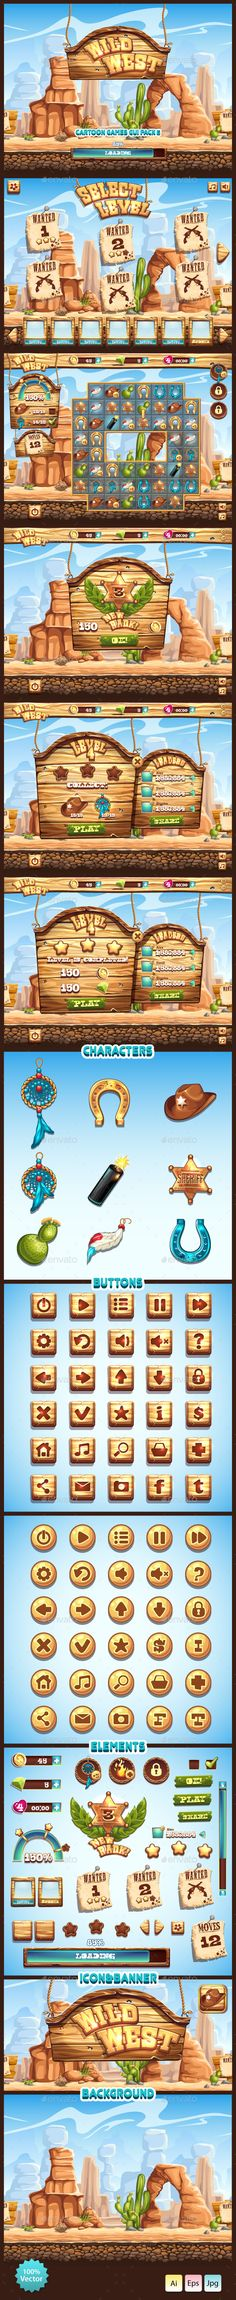 Wild West GUI by Nearbirds General Description Complete pack of user interface elements for your video game.All elements are 100 vector and fully customizab 2d Game Art, Video Game Art, Game Gui, Game Ui Design, Game Props, Game Interface, Mobile Art, Illustrator Cs, Game Item